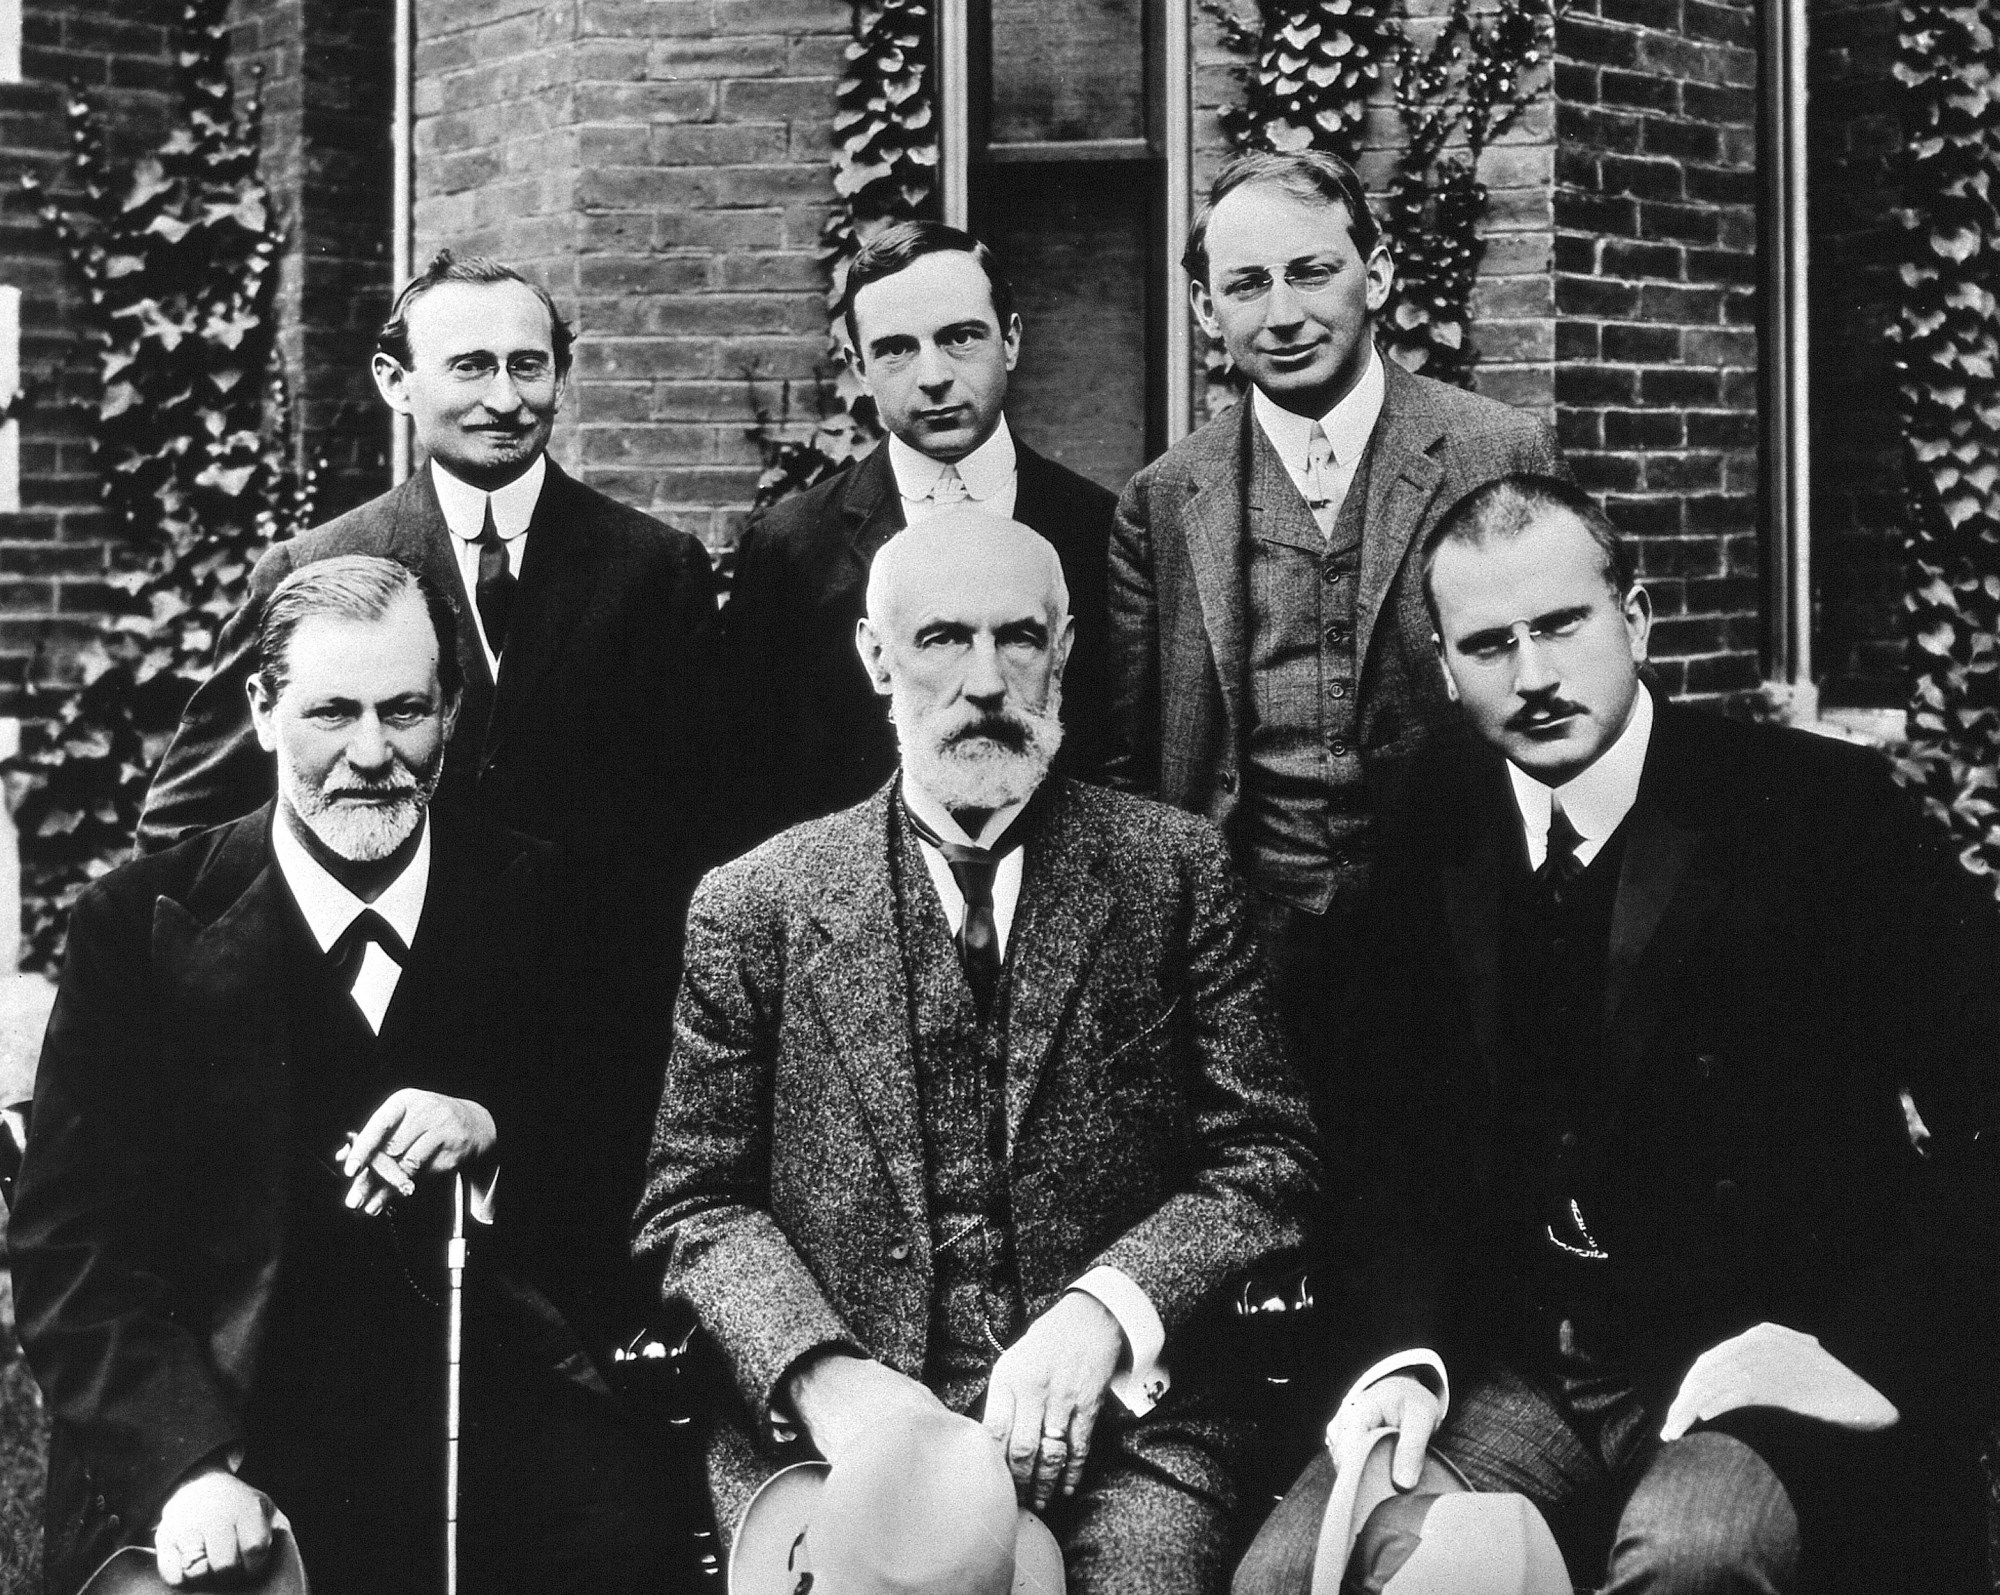 hight resolution of located at http upload wikimedia org wikipedia commons e e1 hall freud jung in front of clark 1909 jpg